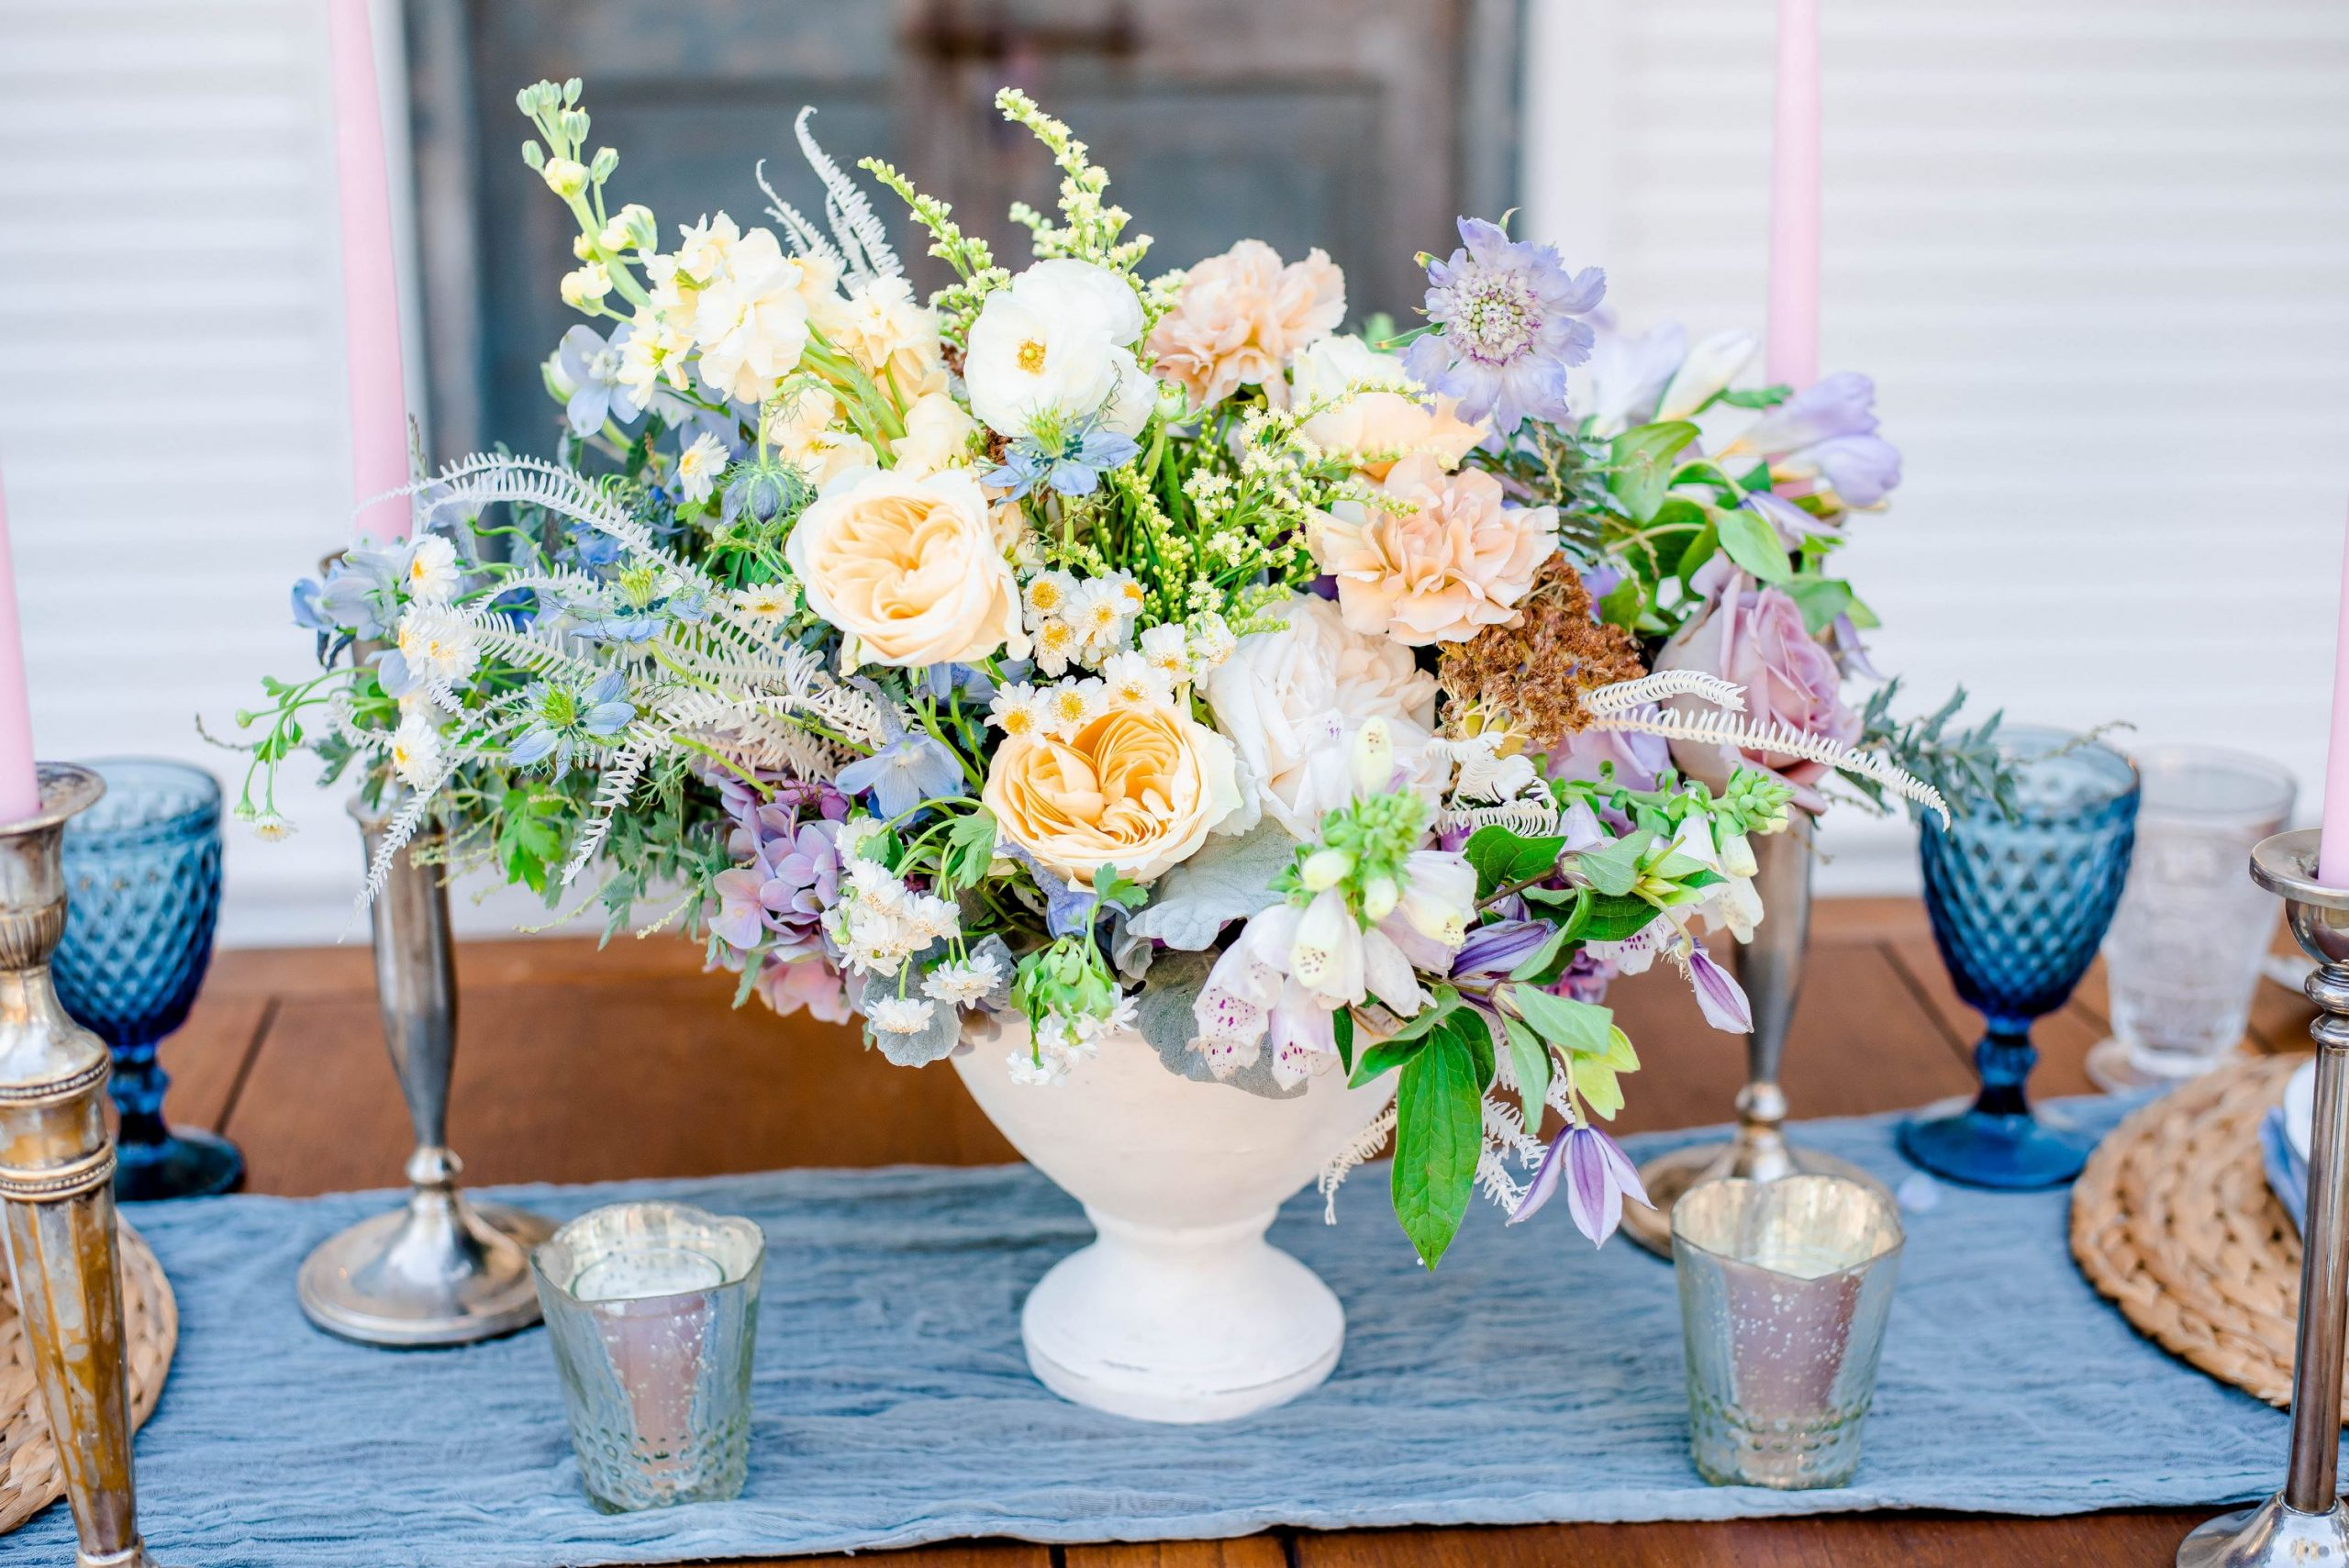 The Vintage Bouquet